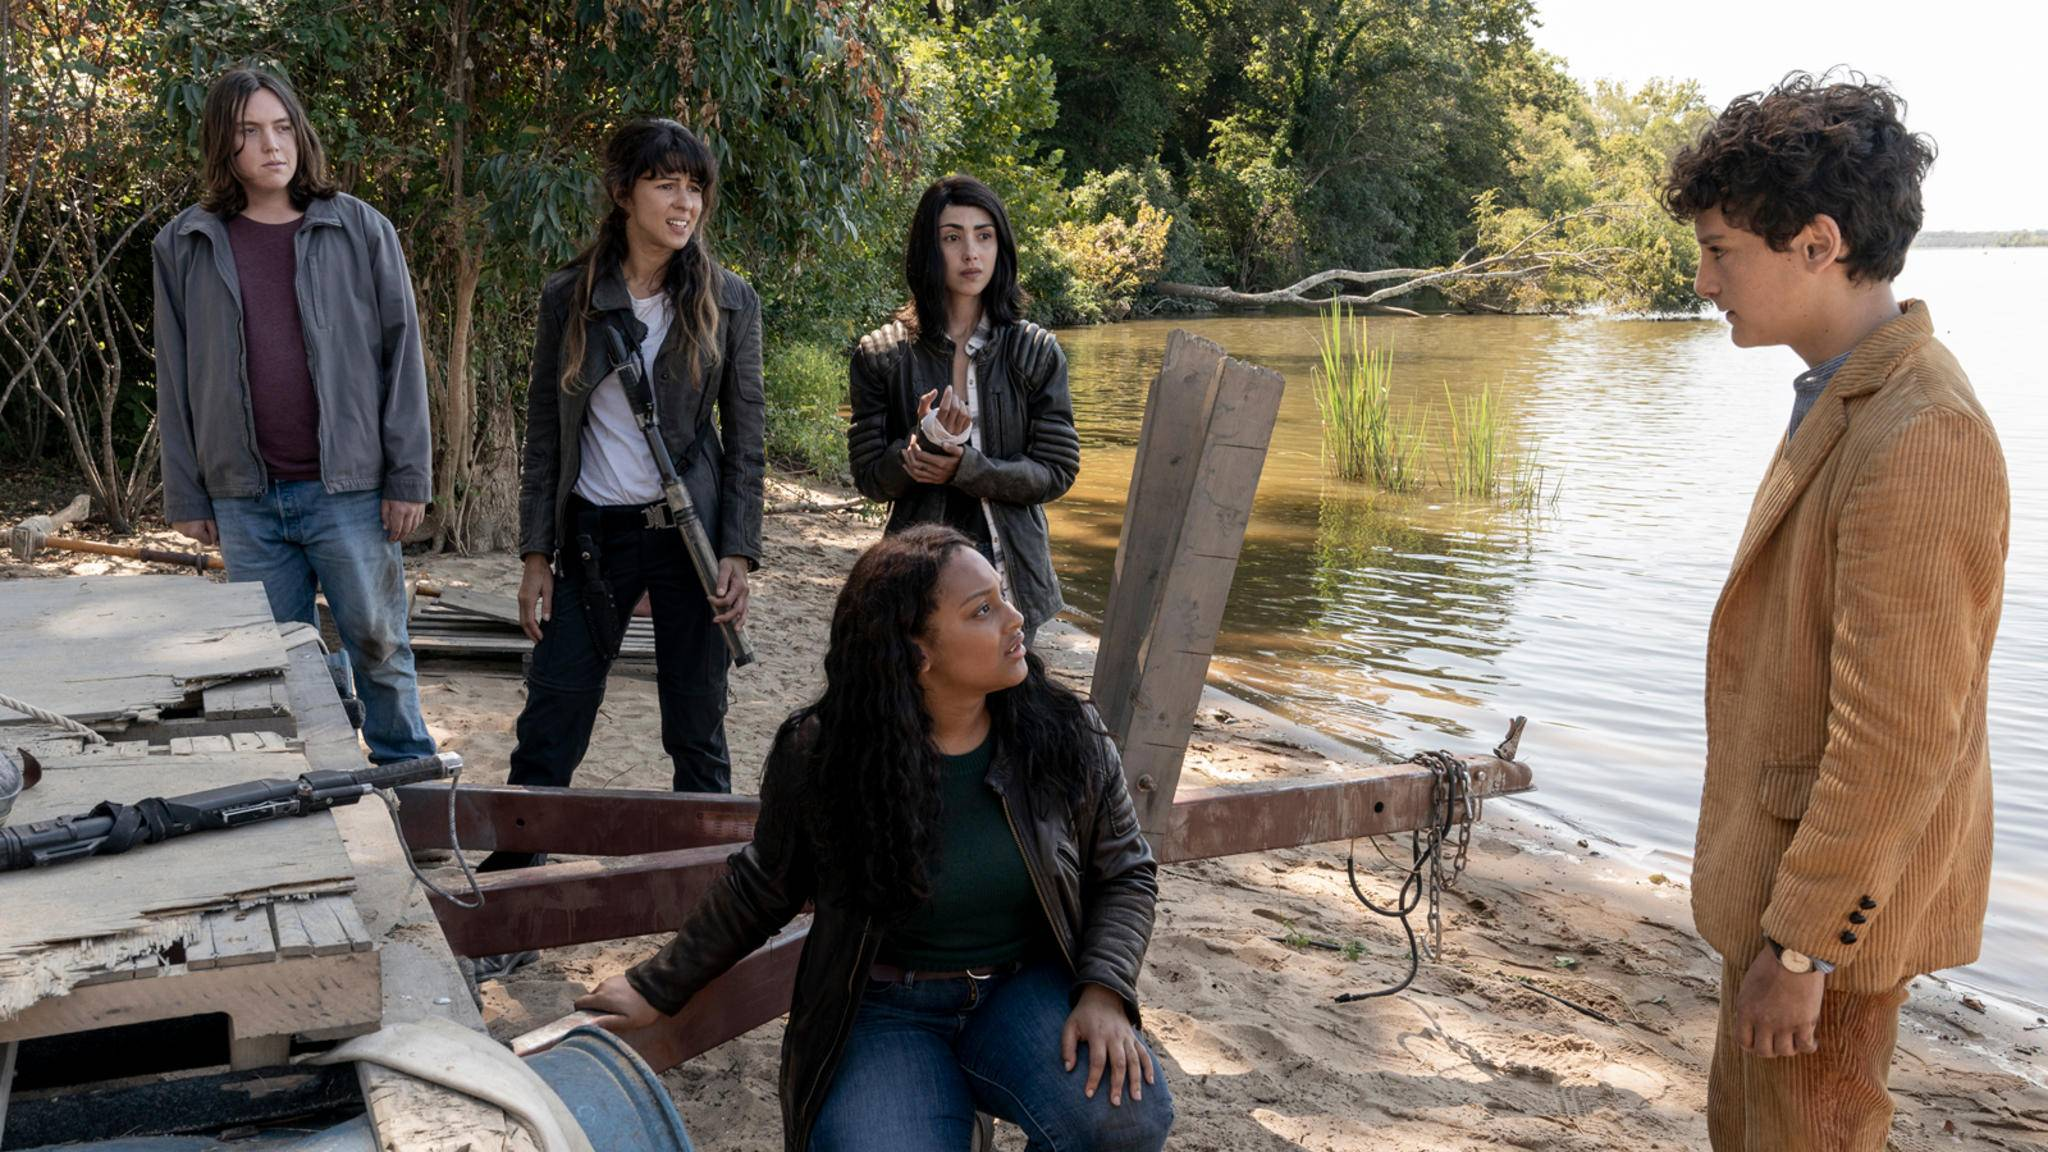 Alexa Mansour, Aliyah Royale, Hal Cumpston und mehr in The Walking Dead: World Beyond